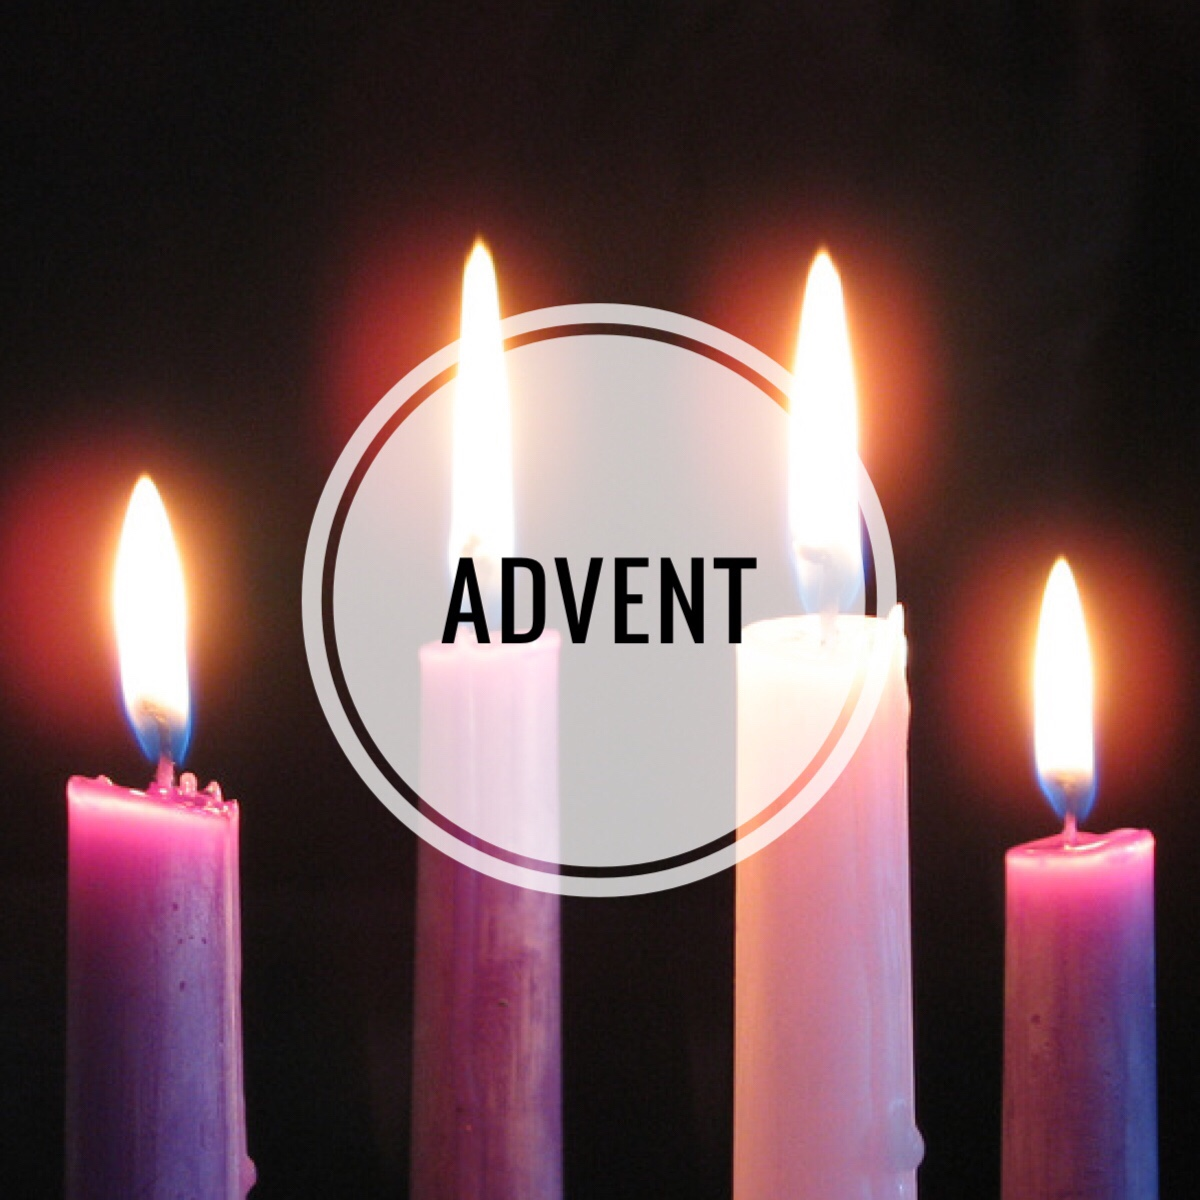 advent levels of peace part 2 kingsway church. Black Bedroom Furniture Sets. Home Design Ideas